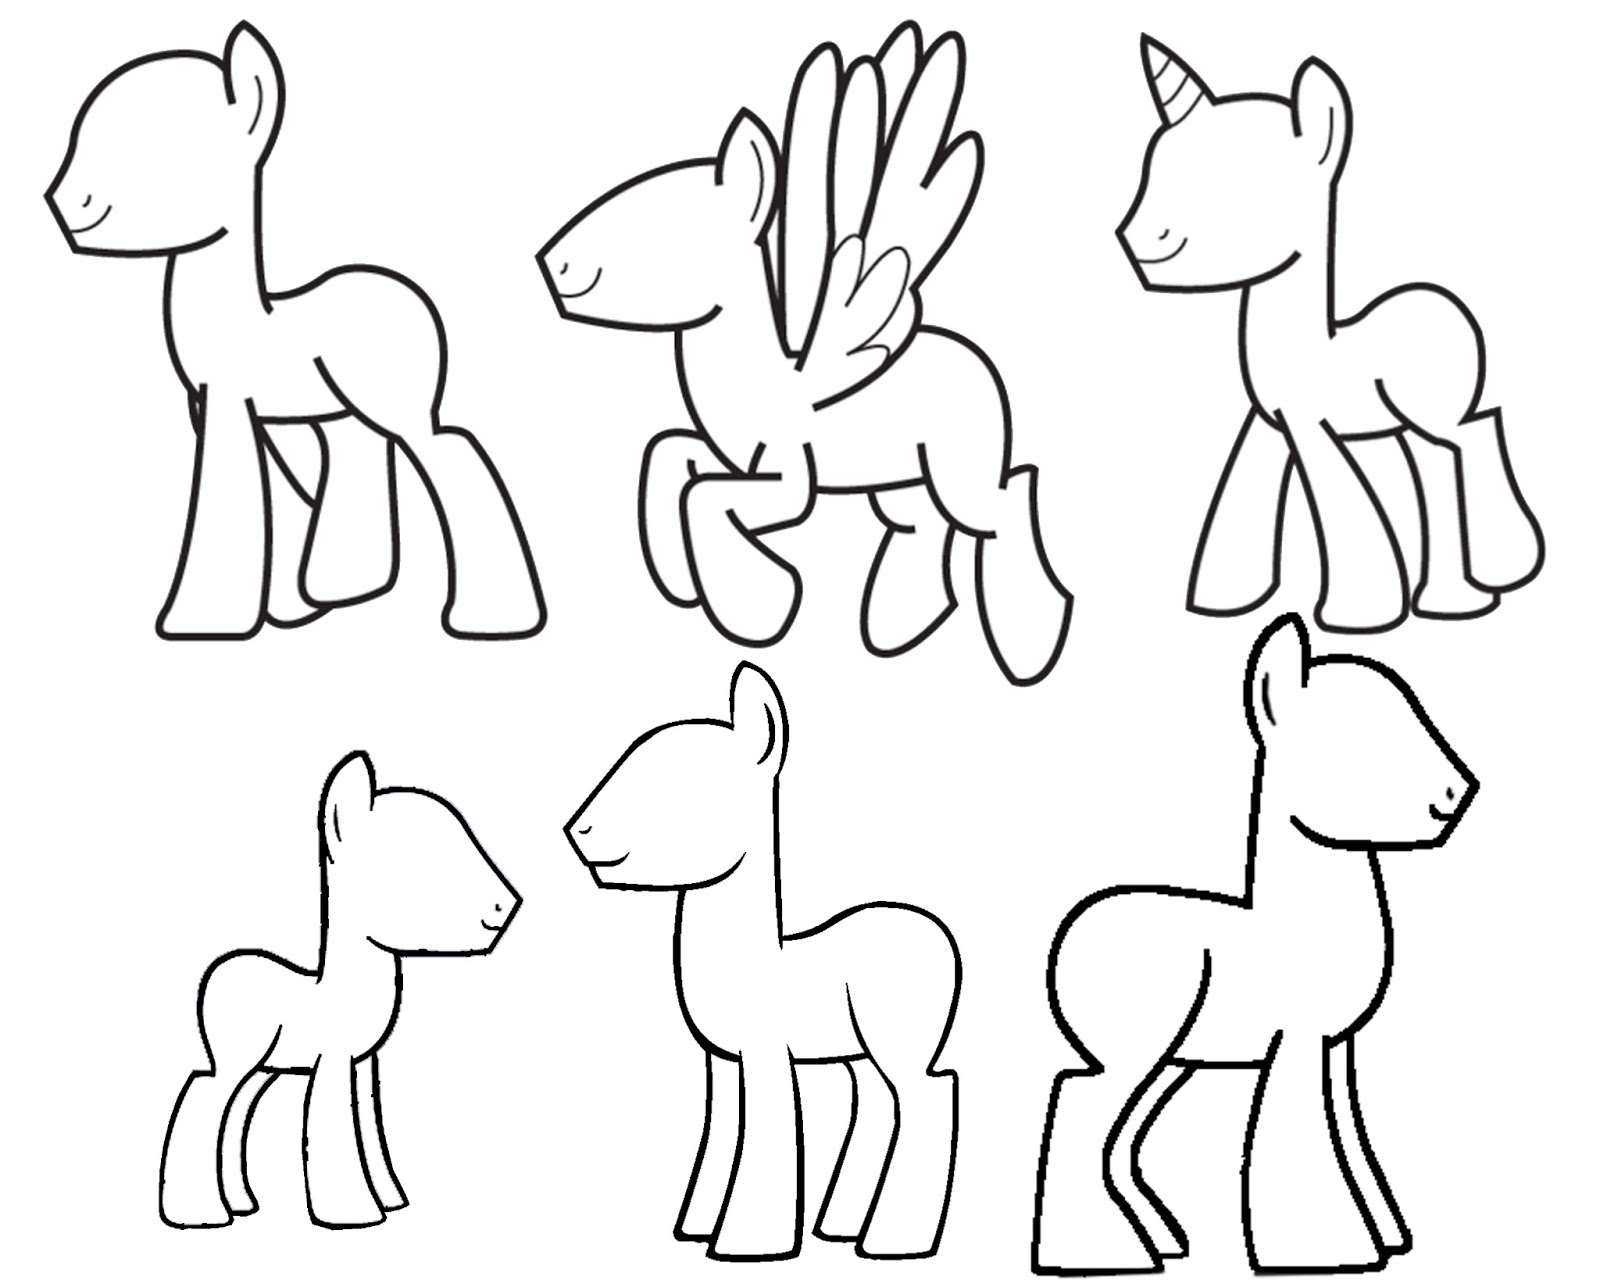 Doodlecraft Design And DRAW Your Own My Little Pony